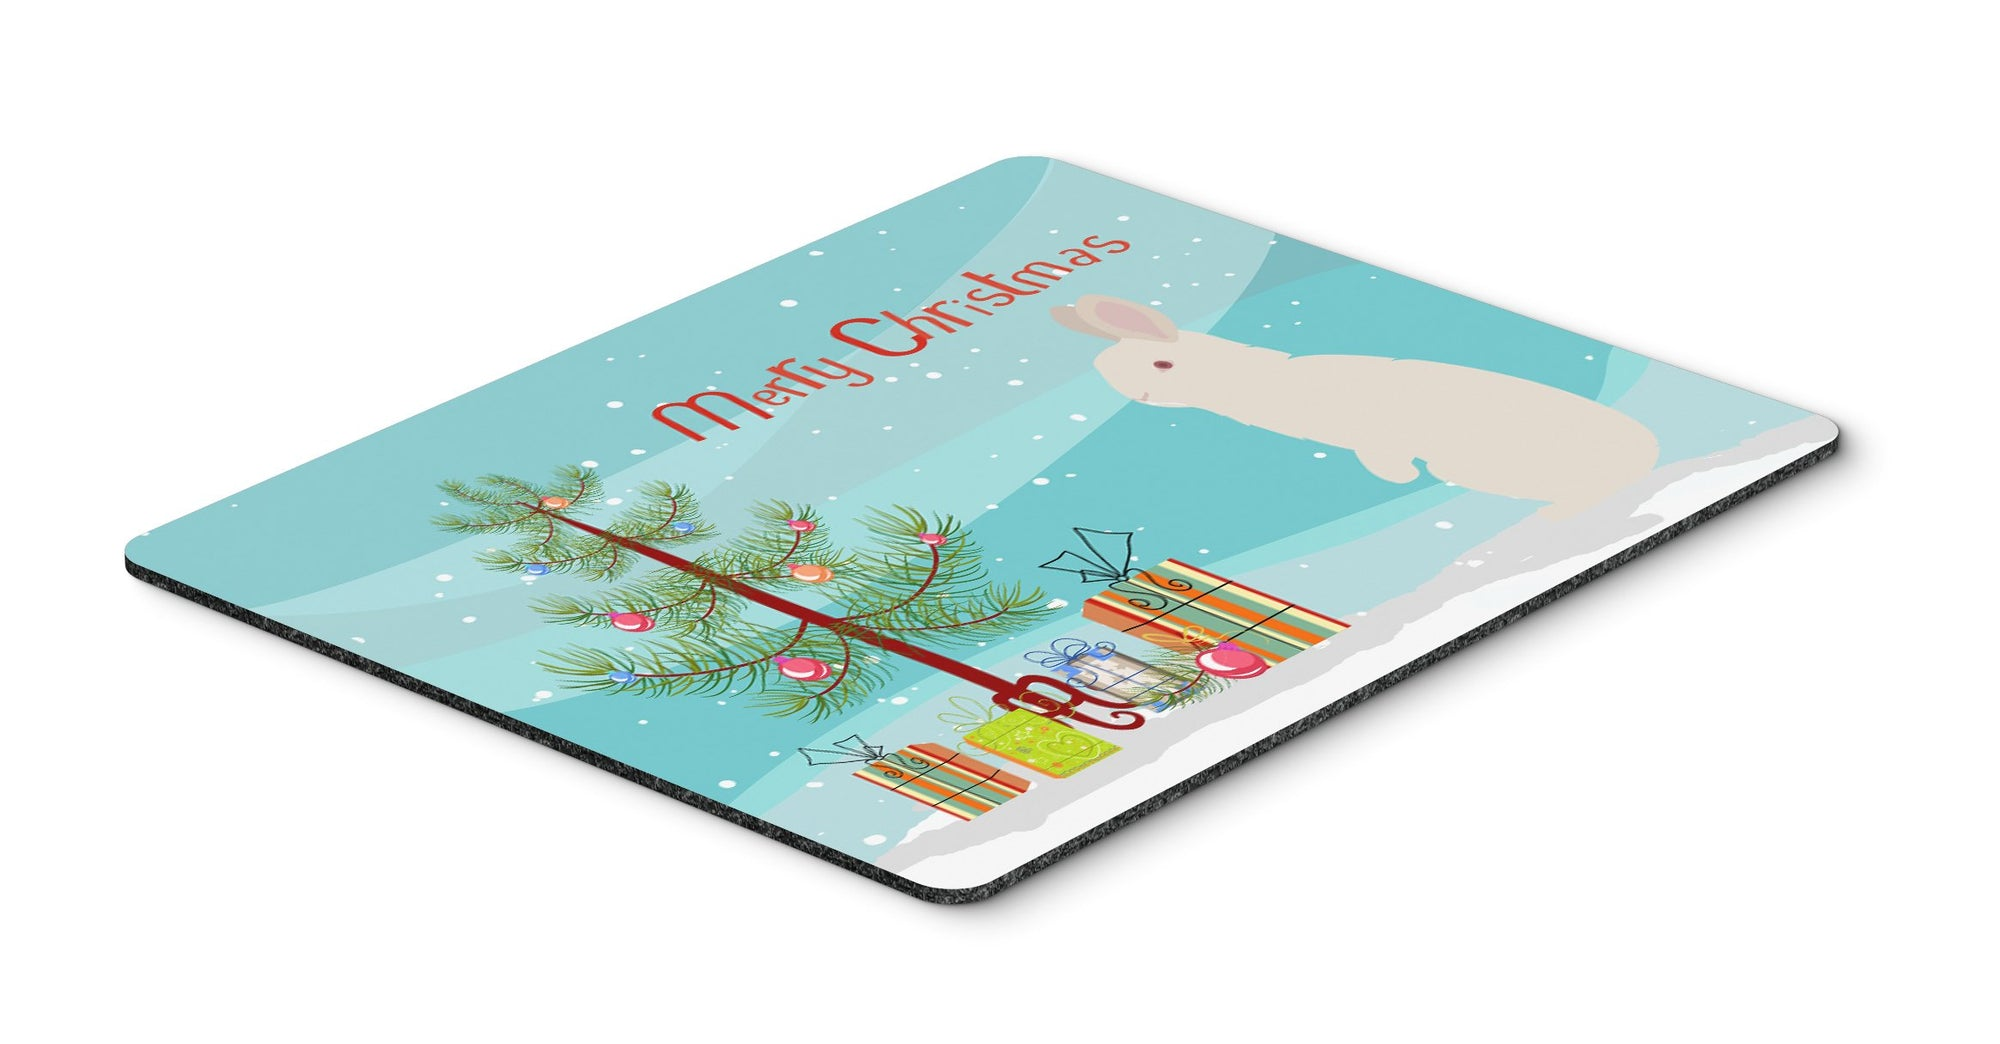 New Zealand White Rabbit Christmas Mouse Pad, Hot Pad or Trivet BB9332MP by Caroline's Treasures